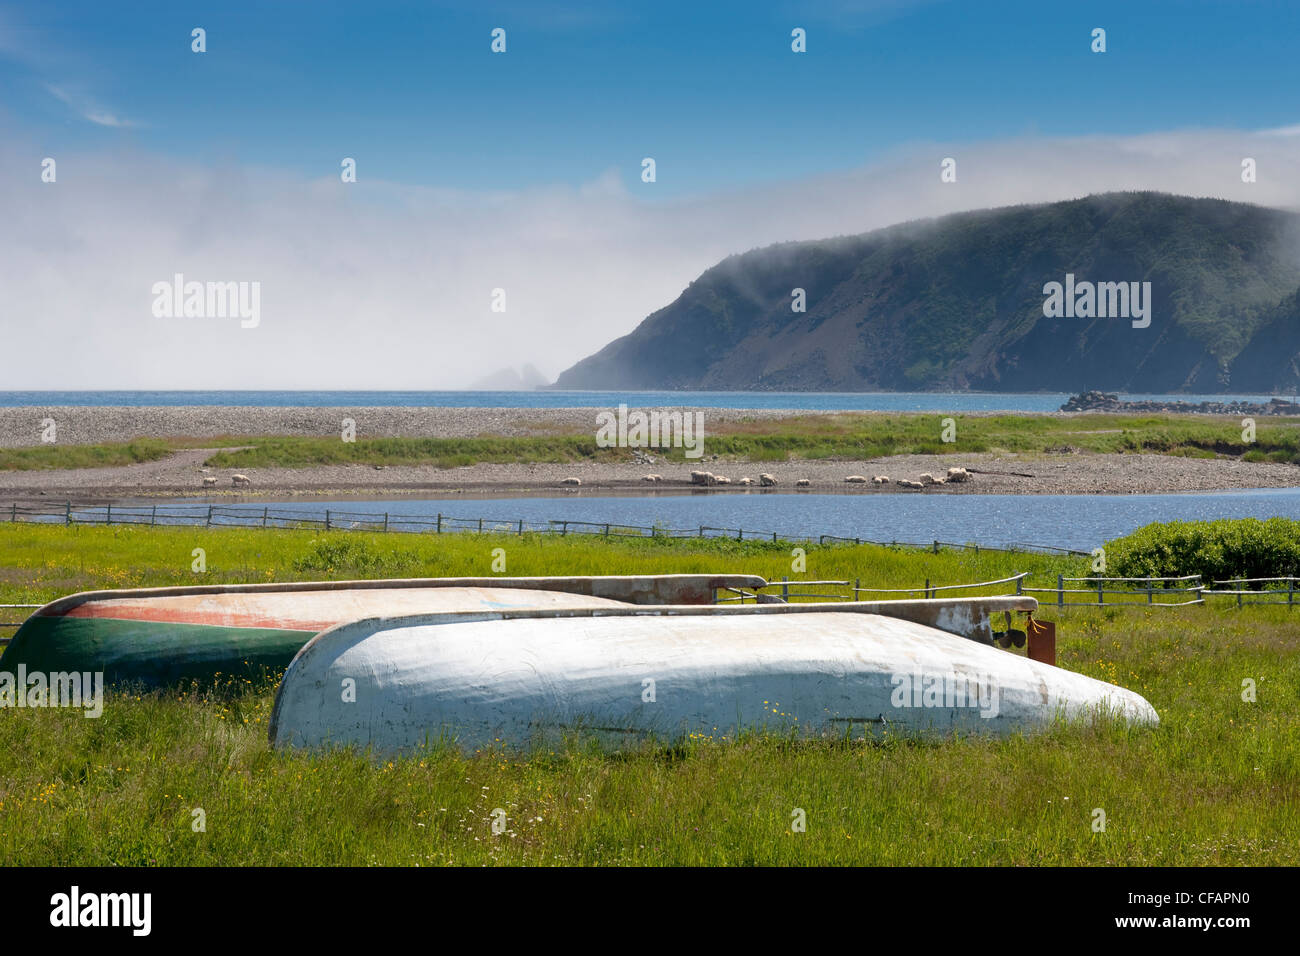 Wooden boats with coastal fog and sheep grazing in the background, Branch, Newfoundland and Labrador, Canada. - Stock Image